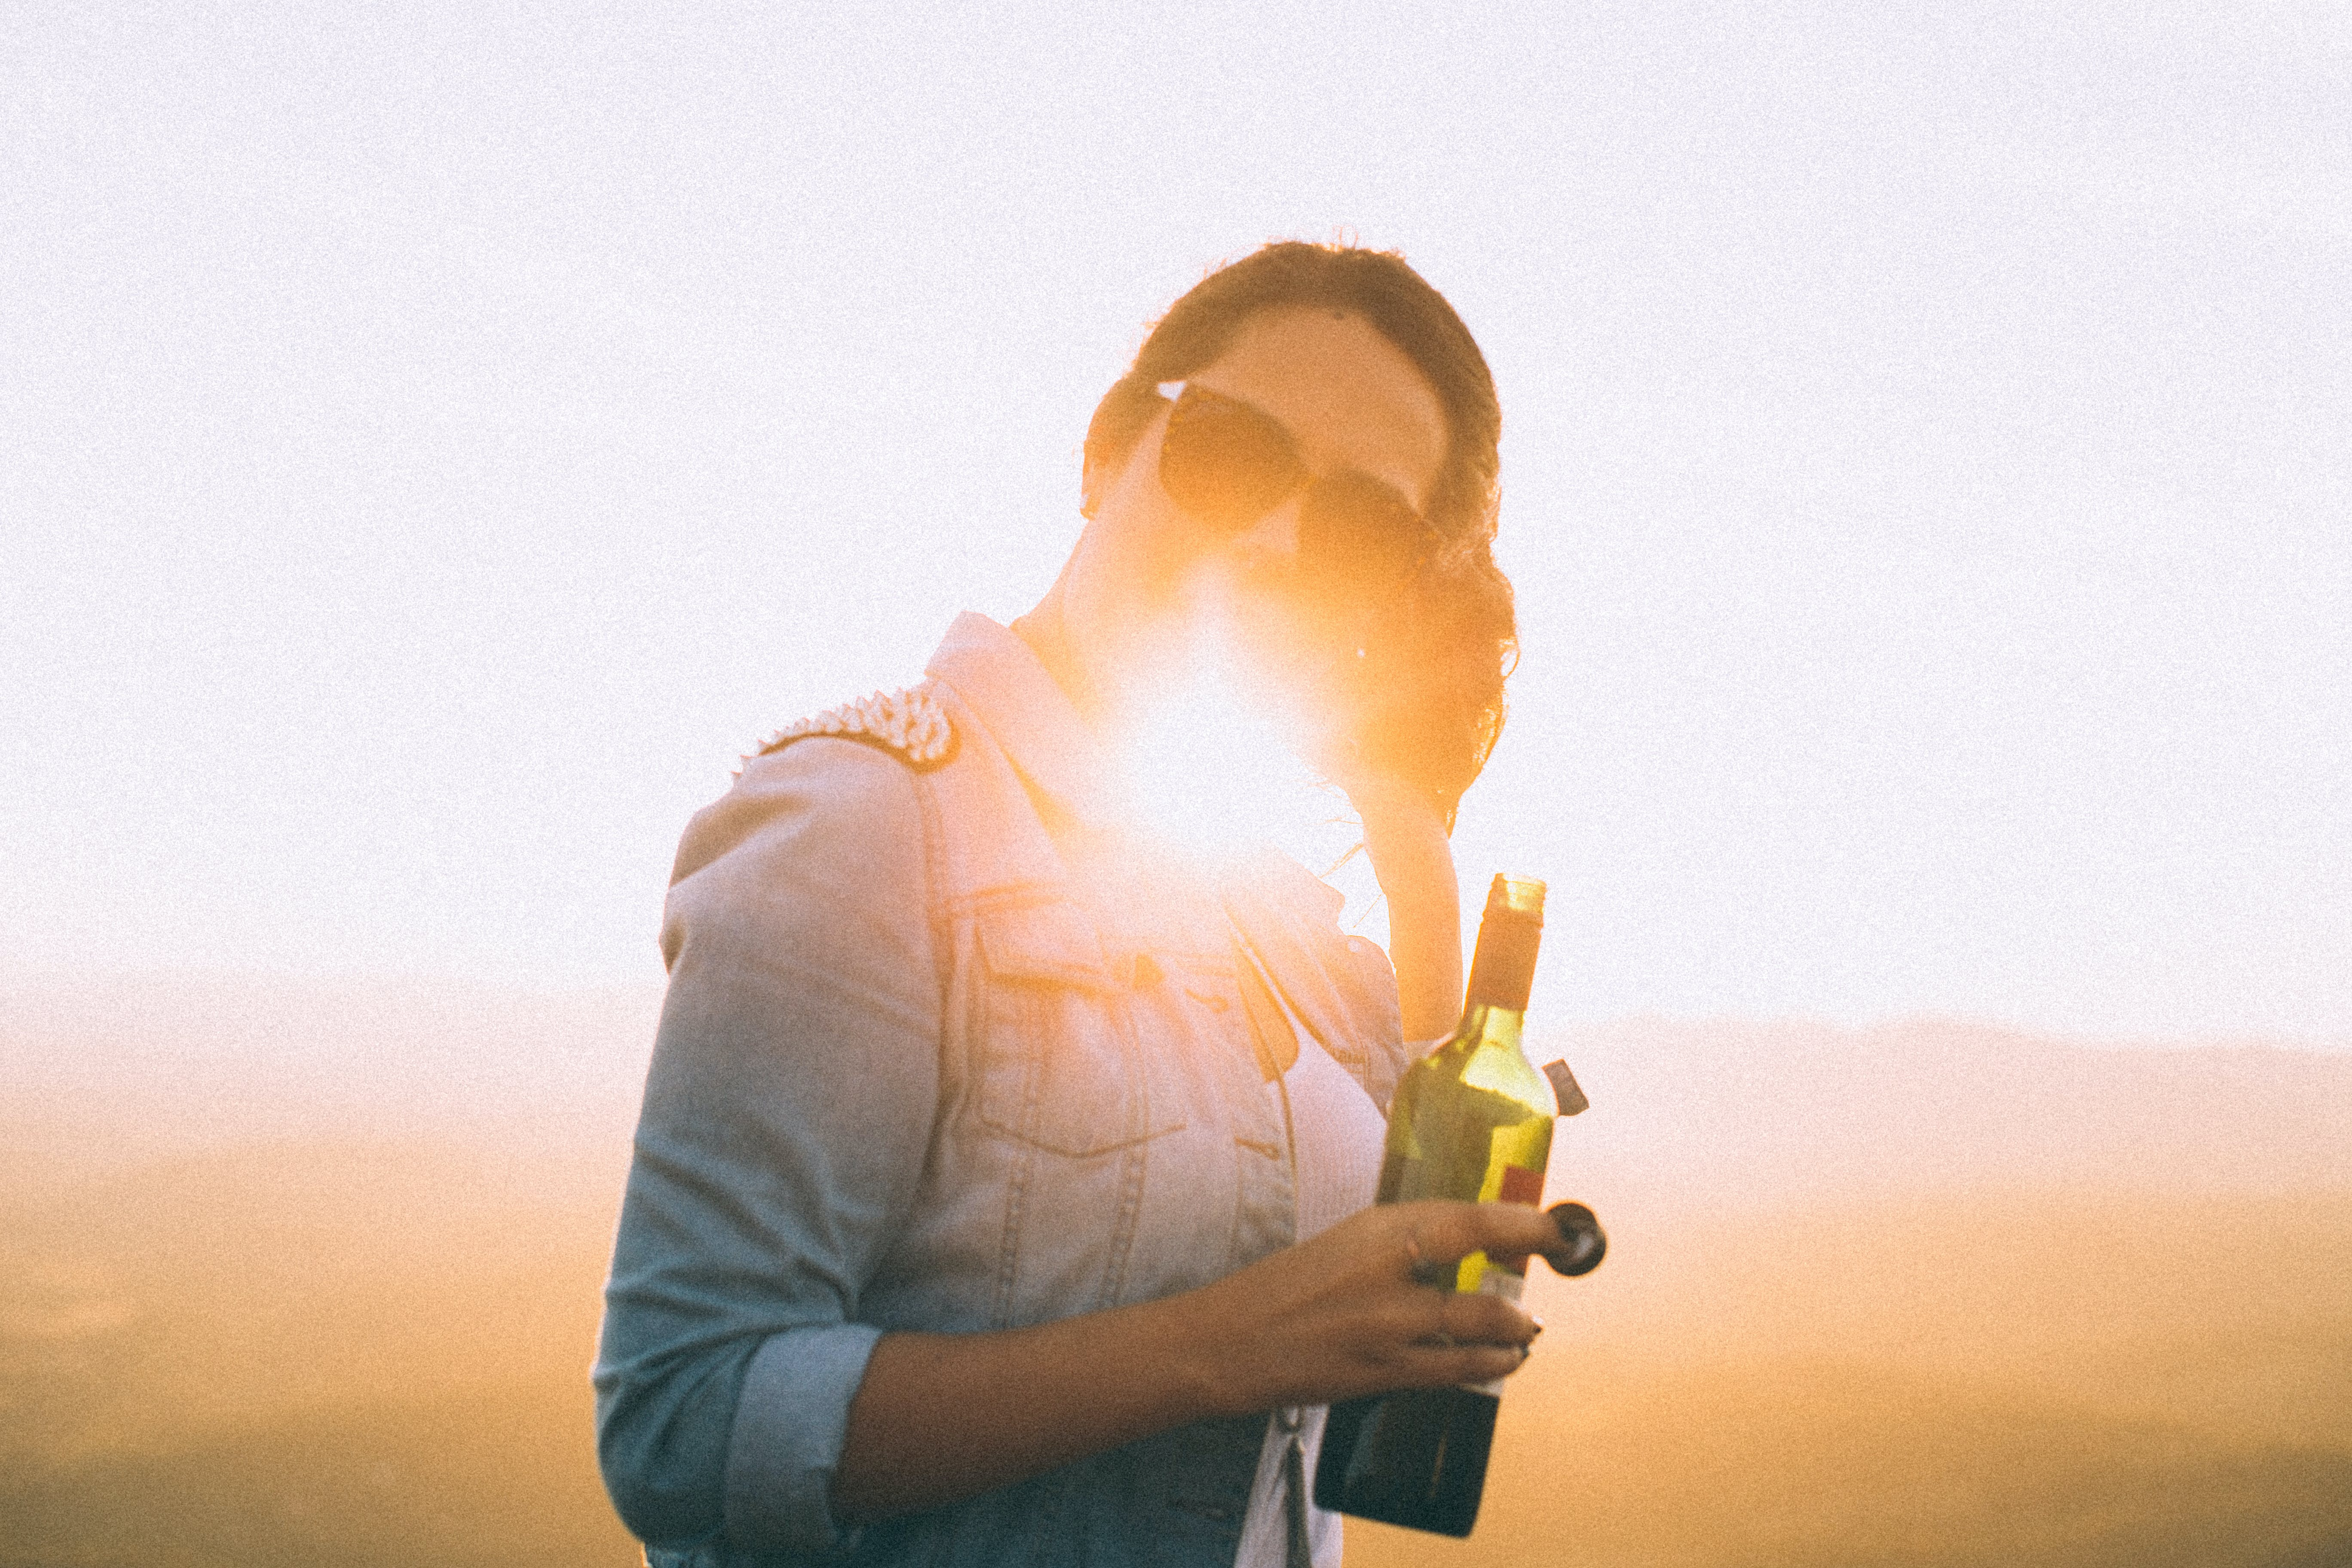 Woman Wearing Blue Denim Jacket Holding Wine Bottle in Golden Hour Photo